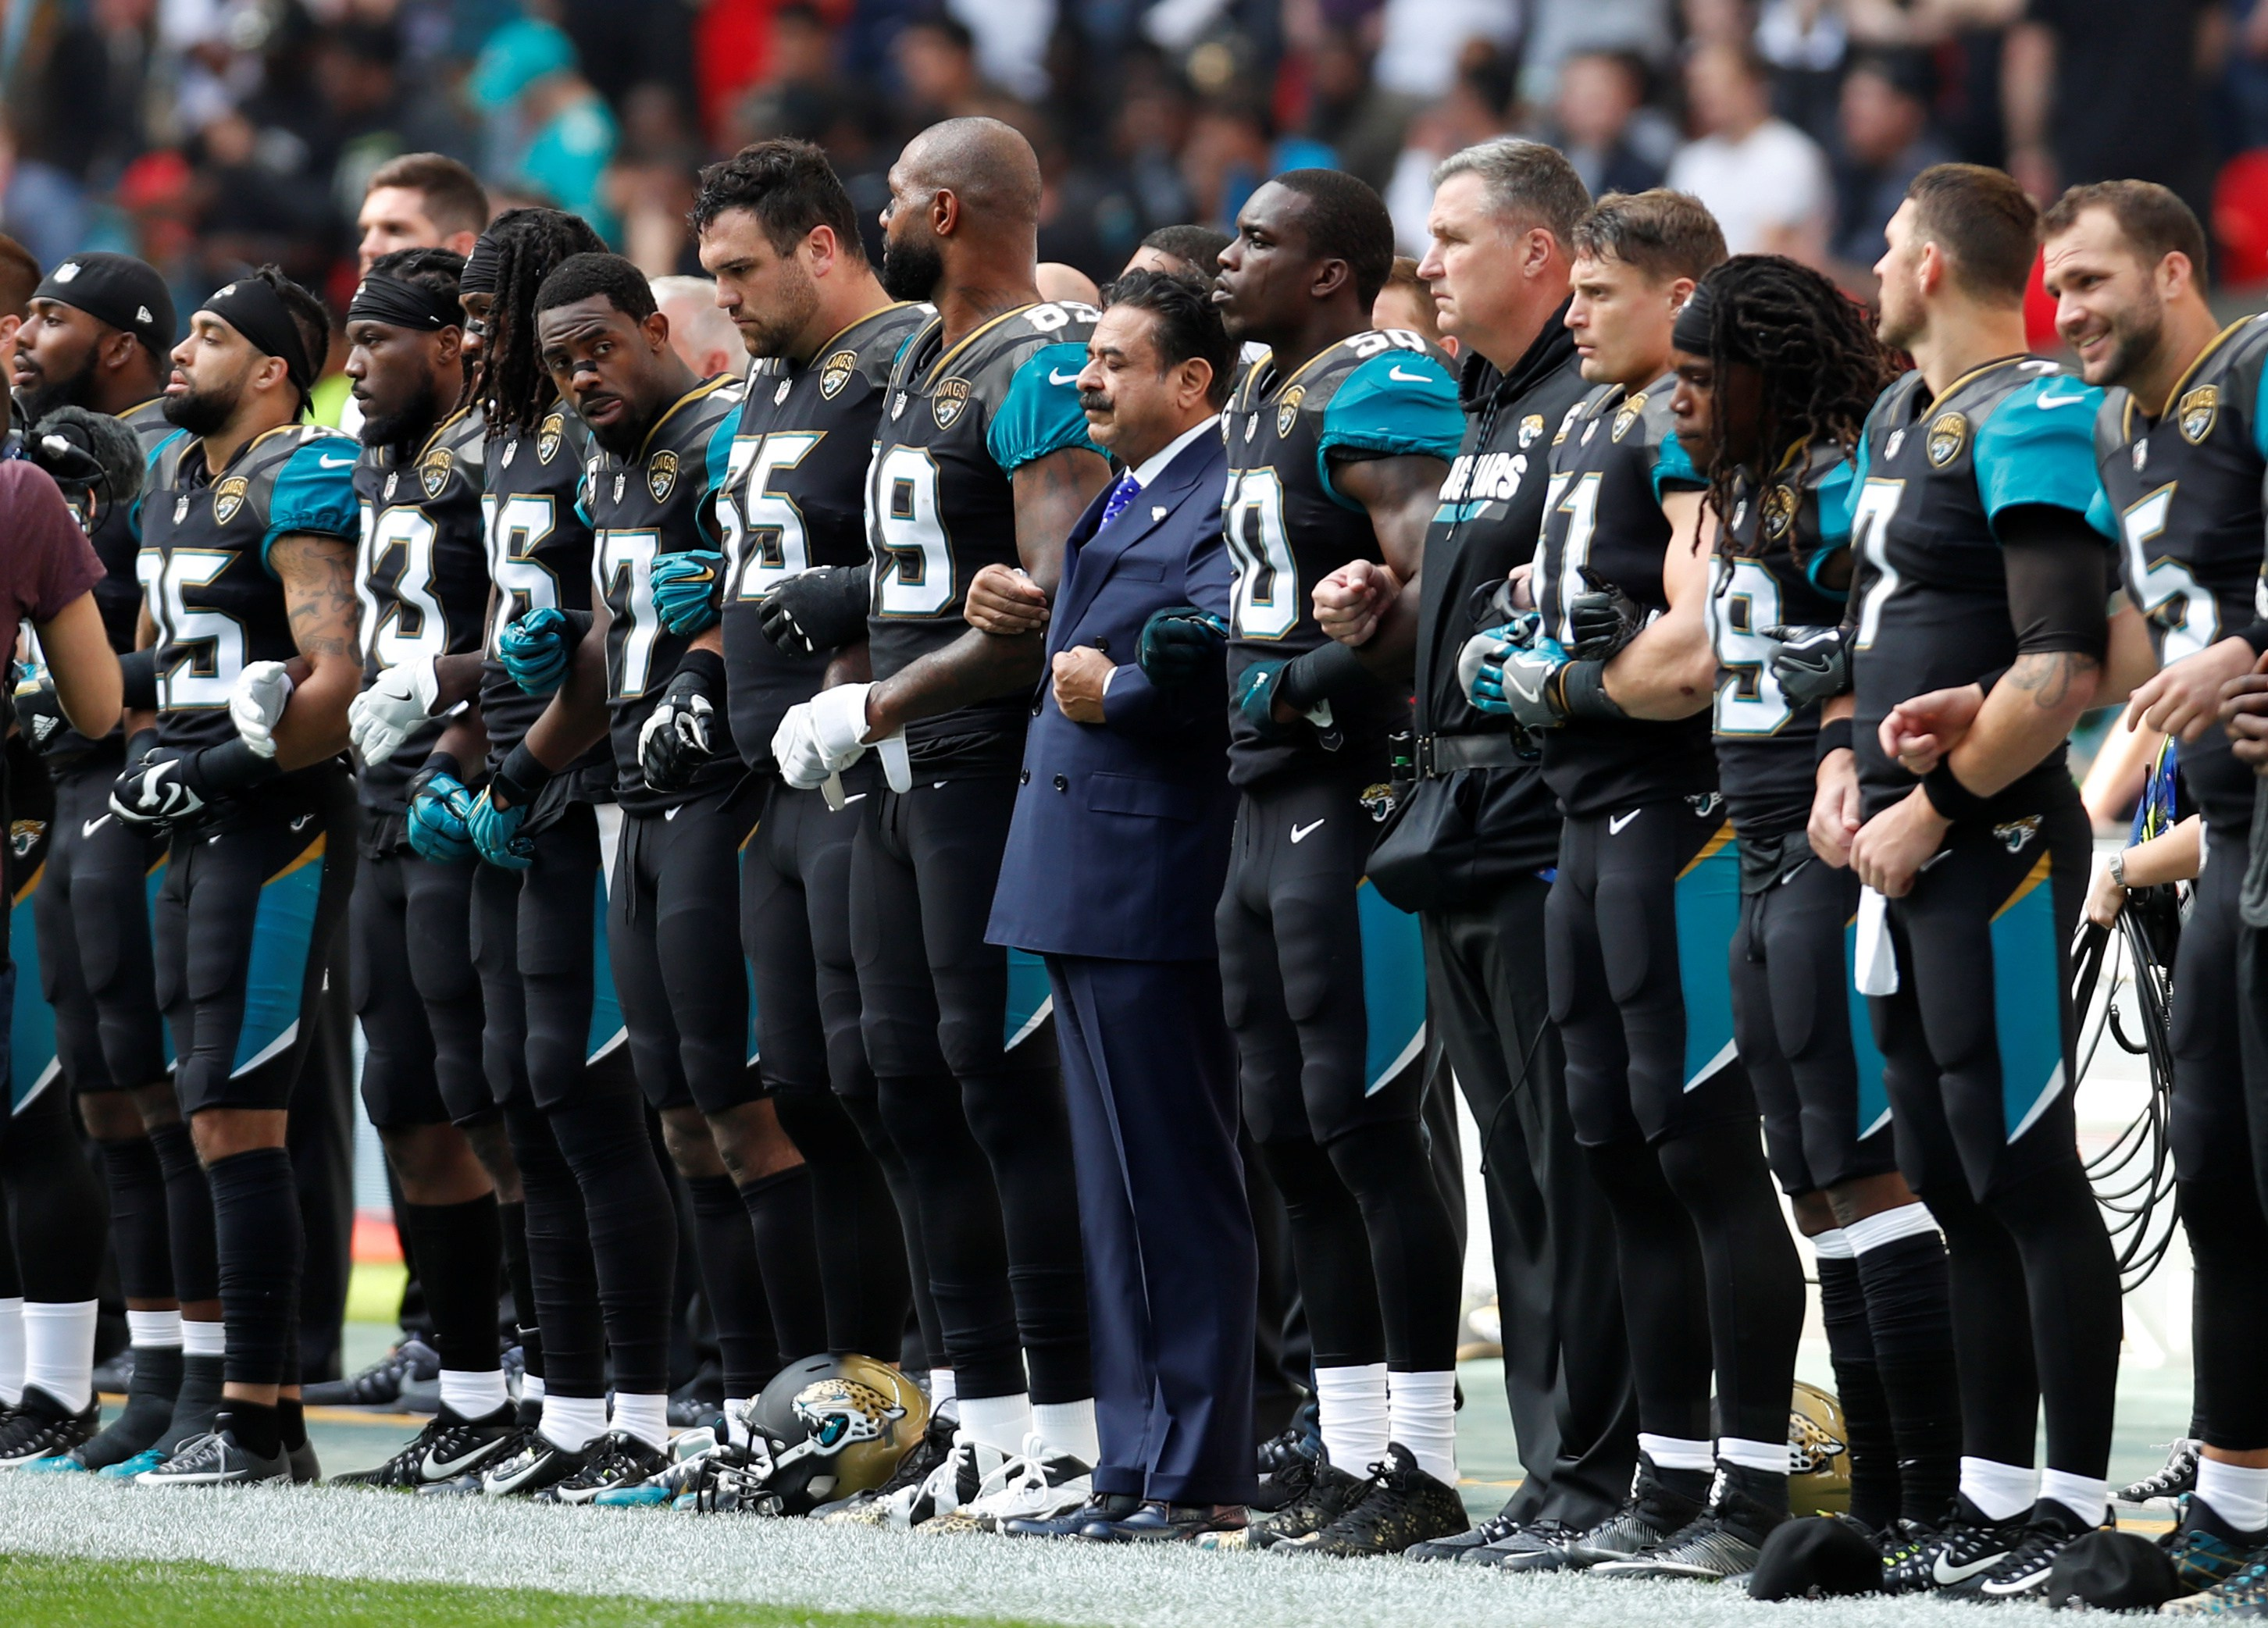 NFL Football - Jacksonville Jaguars vs Baltimore Ravens - NFL International Series - Wembley Stadium, London, Britain - September 24, 2017 Jacksonville Jaguars owner Shahid Khan links arms with players during the national anthems before the match Action Images via Reuters/Paul Childs - RC172380A0B0